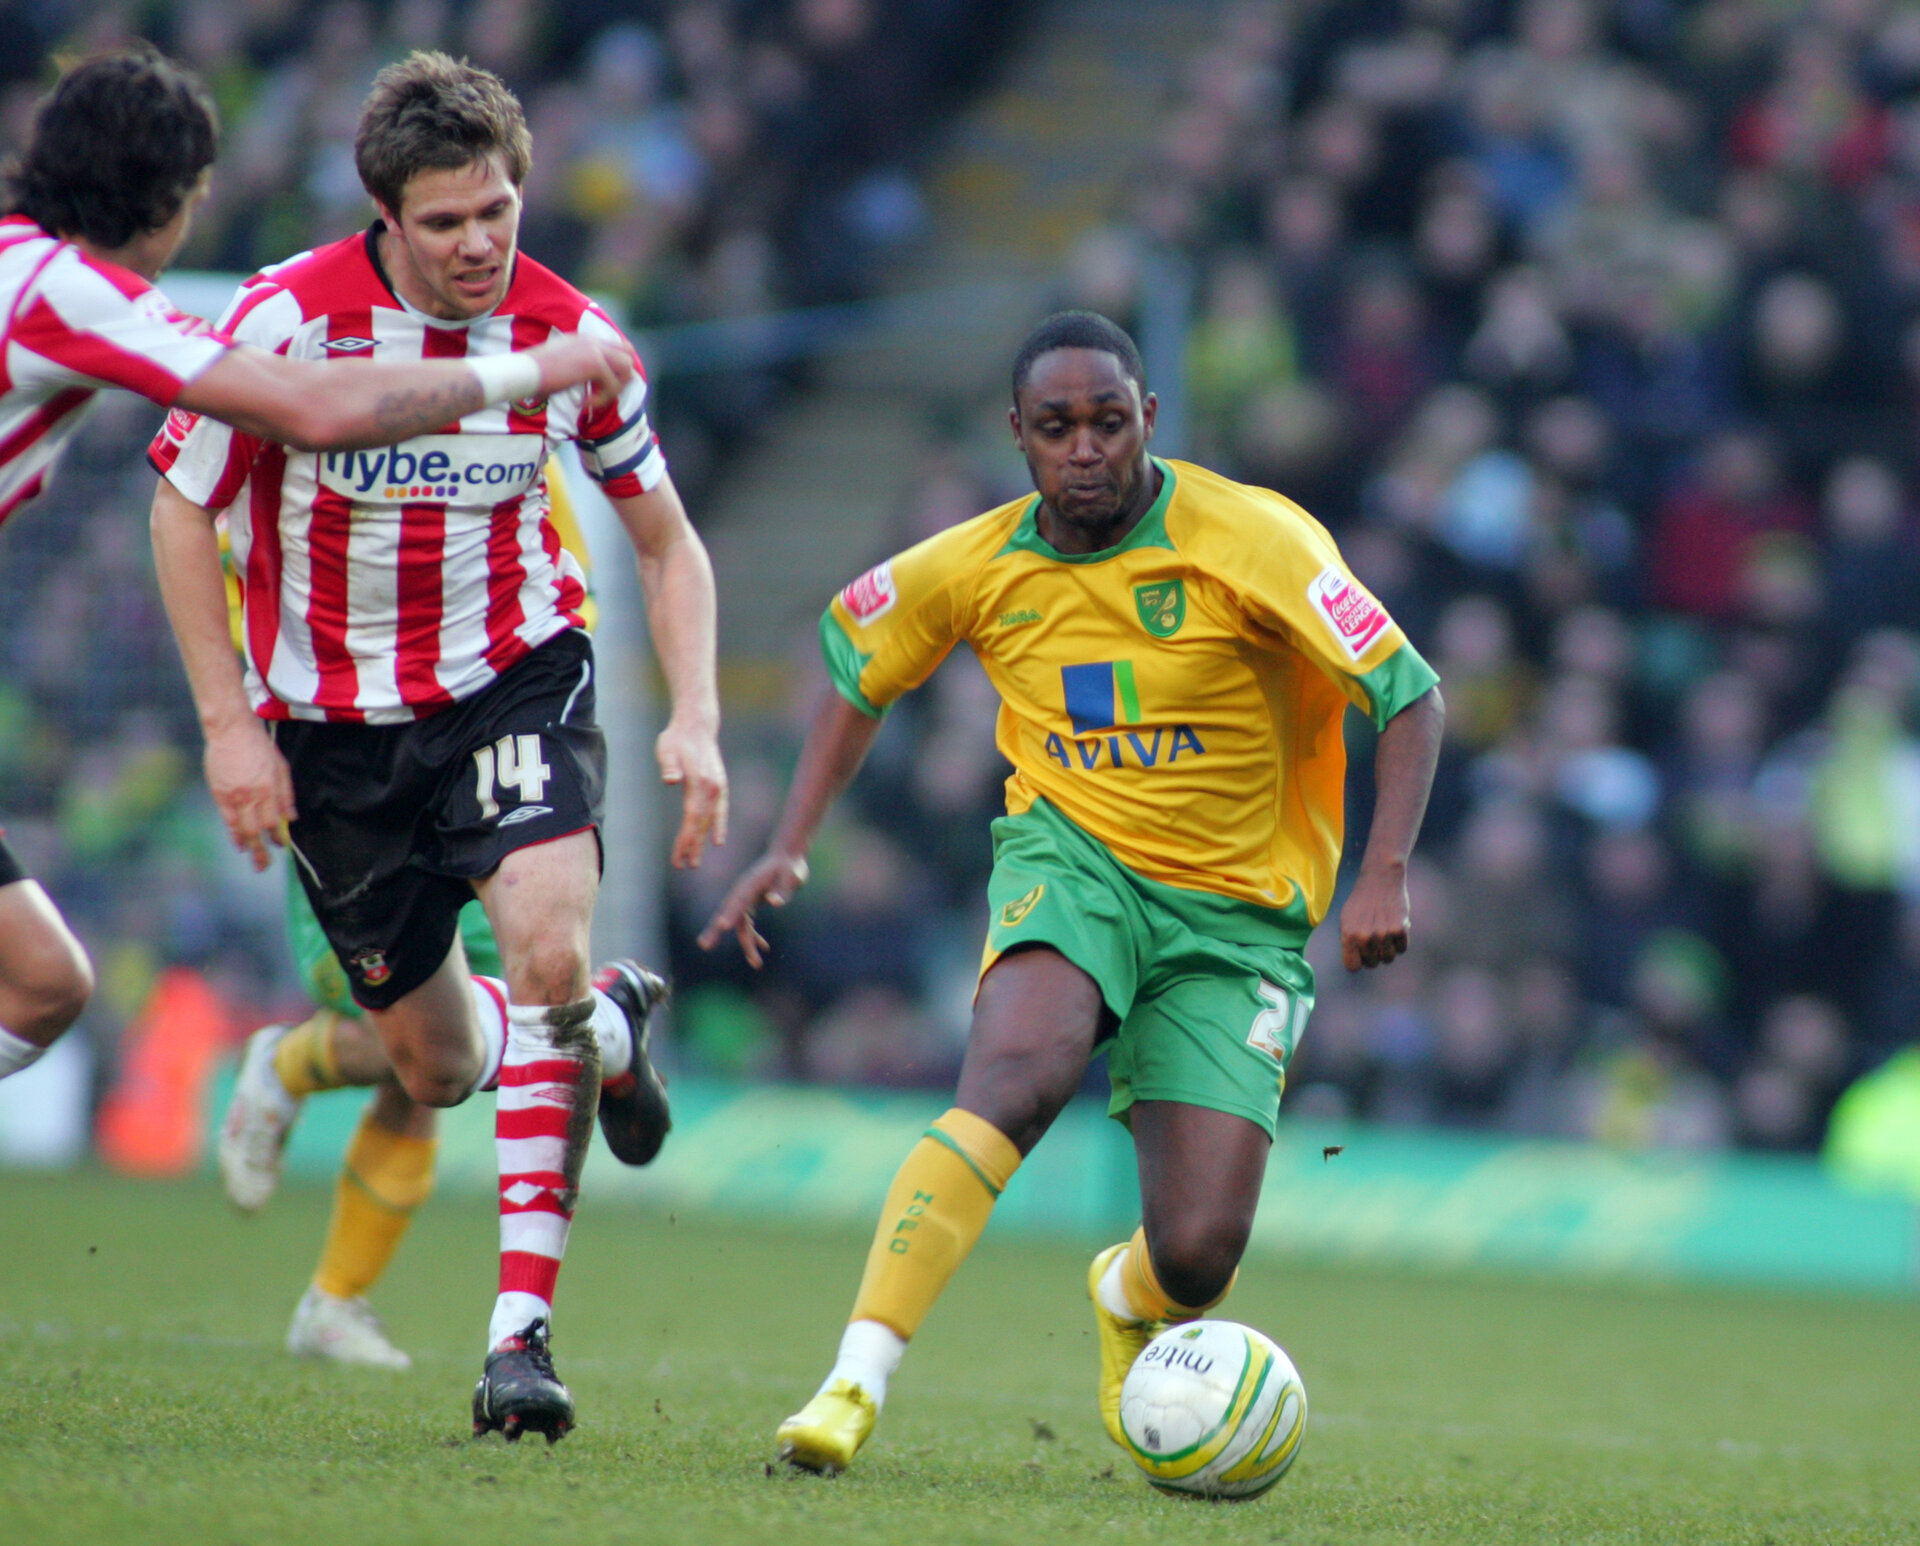 Football - Norwich City v Southampton - Coca-Cola Football League One - Carrow Road - 09/10 - 20/2/10  Anthony McNamee (R) - Norwich City in action against Dean Hammond - Southampton  Mandatory Credit: Action Images / David Field Football - Norwich City v Southampton - Coca-Cola Football League One - Carrow Road - 09/10 - 20/2/10 Anthony McNamee (R) - Norwich City in action against Dean Hammond - Southampton Mandatory Credit: Action Images / David Field